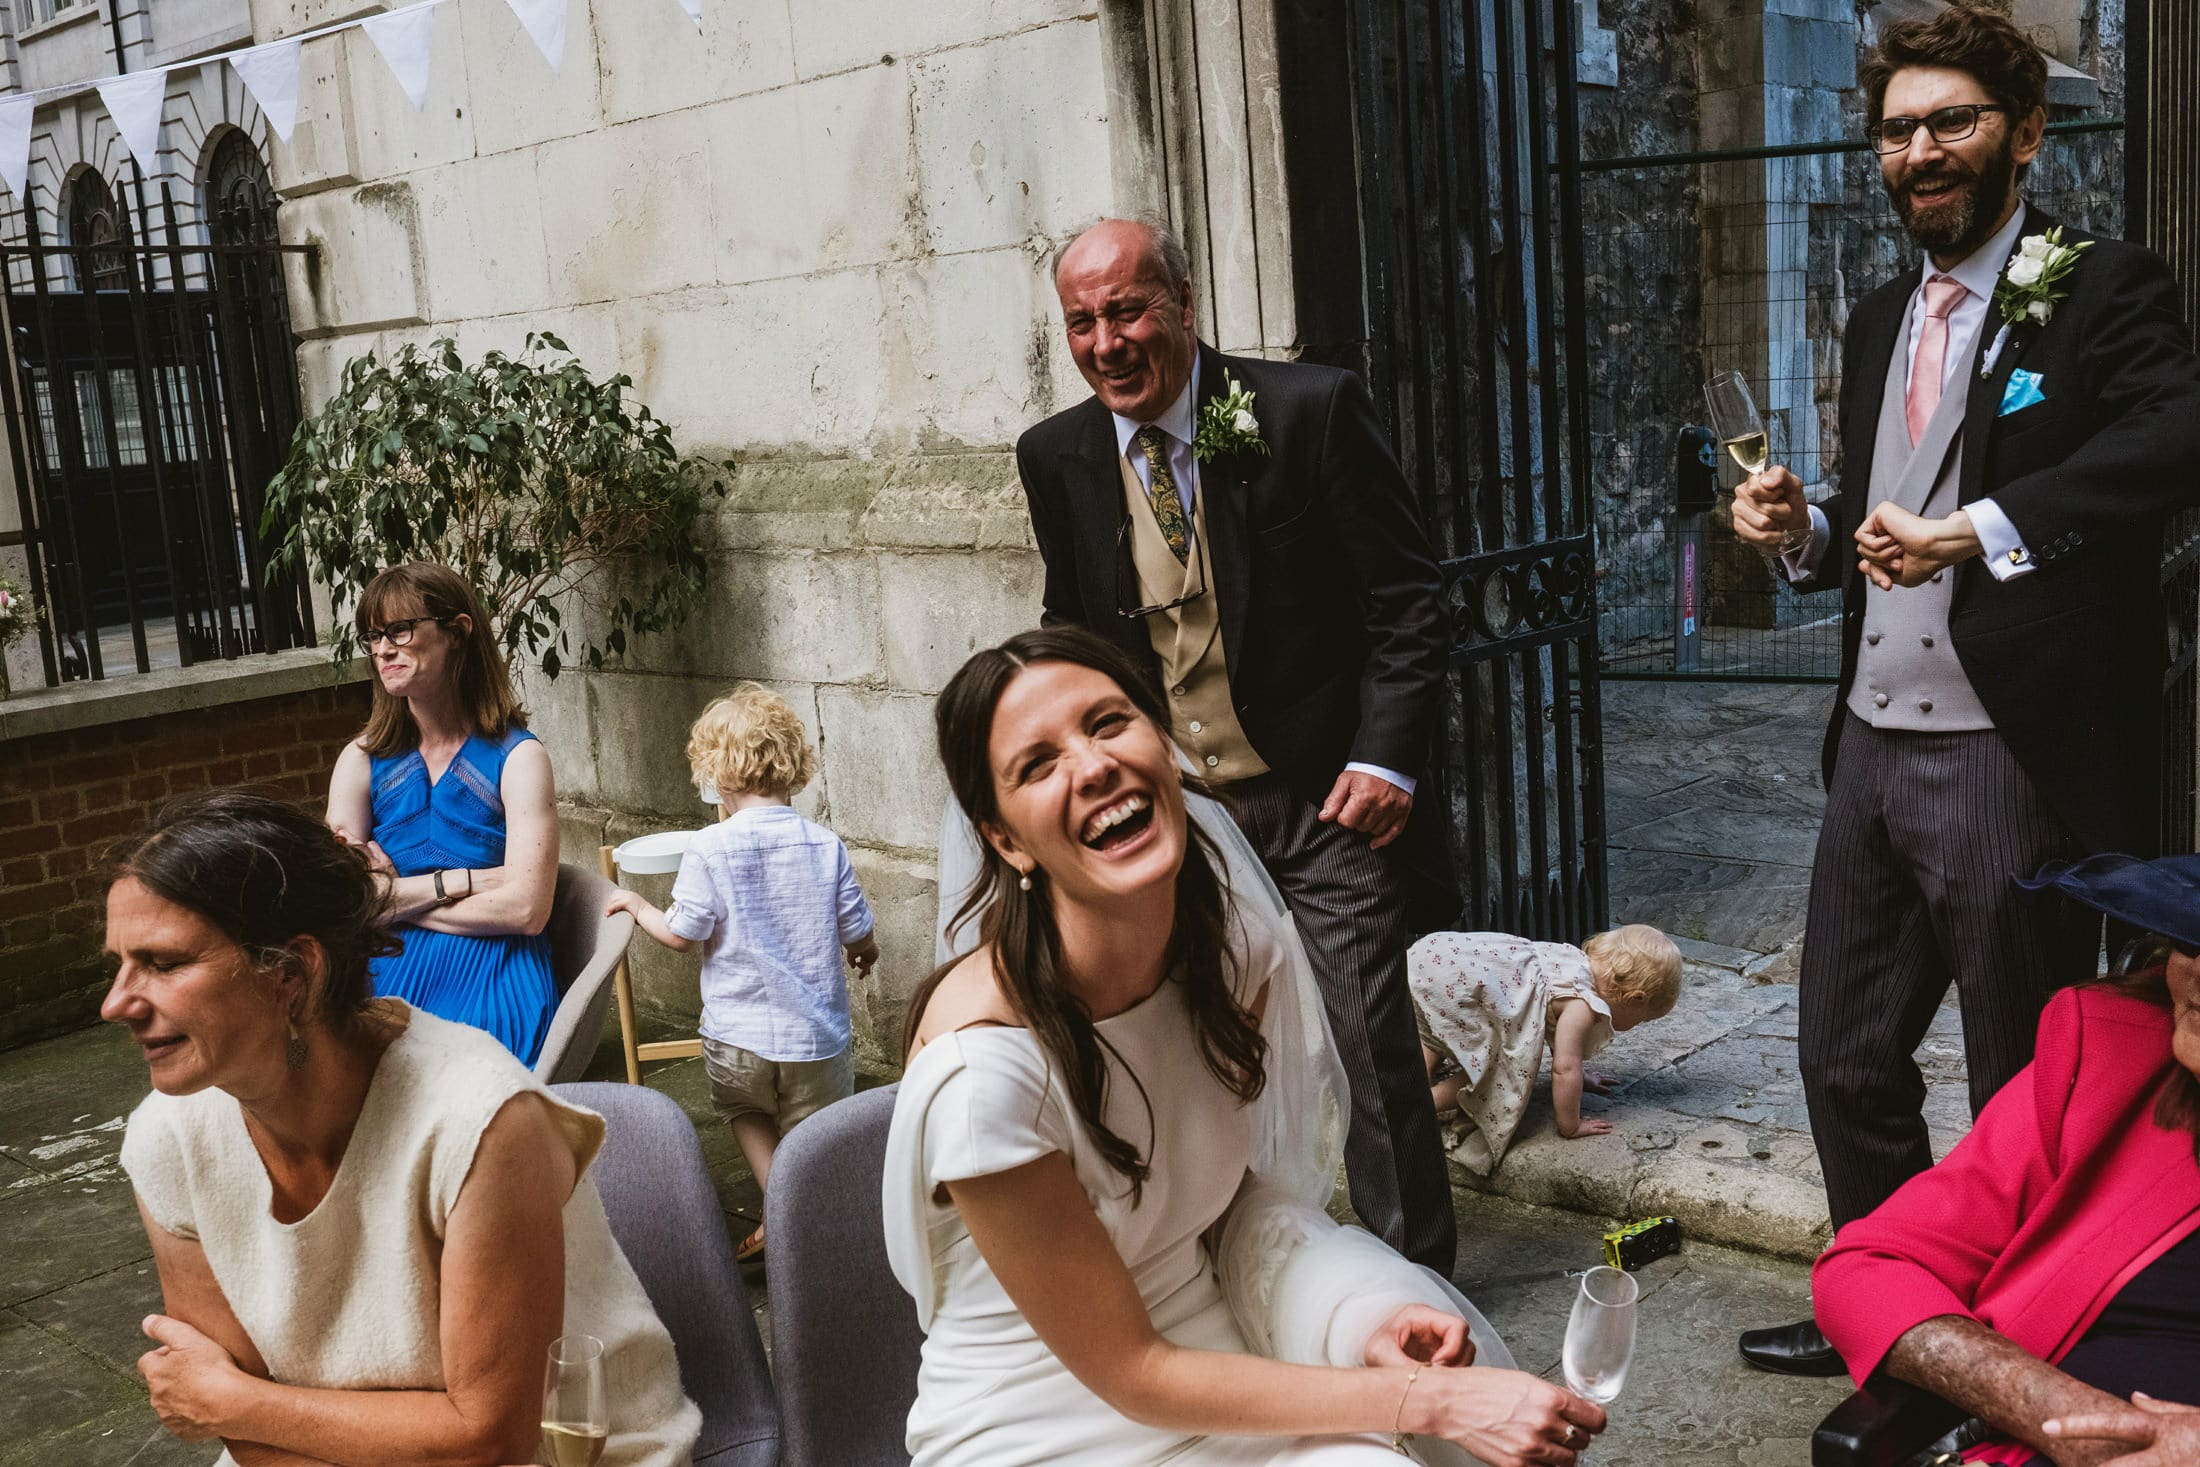 Bride (front, centre) laughs hard at a joke also enjoyed by her father standing behind her and a groomsman to her left. Between and around them multiple other stories are evolving, including a child crawling out through the gates behind